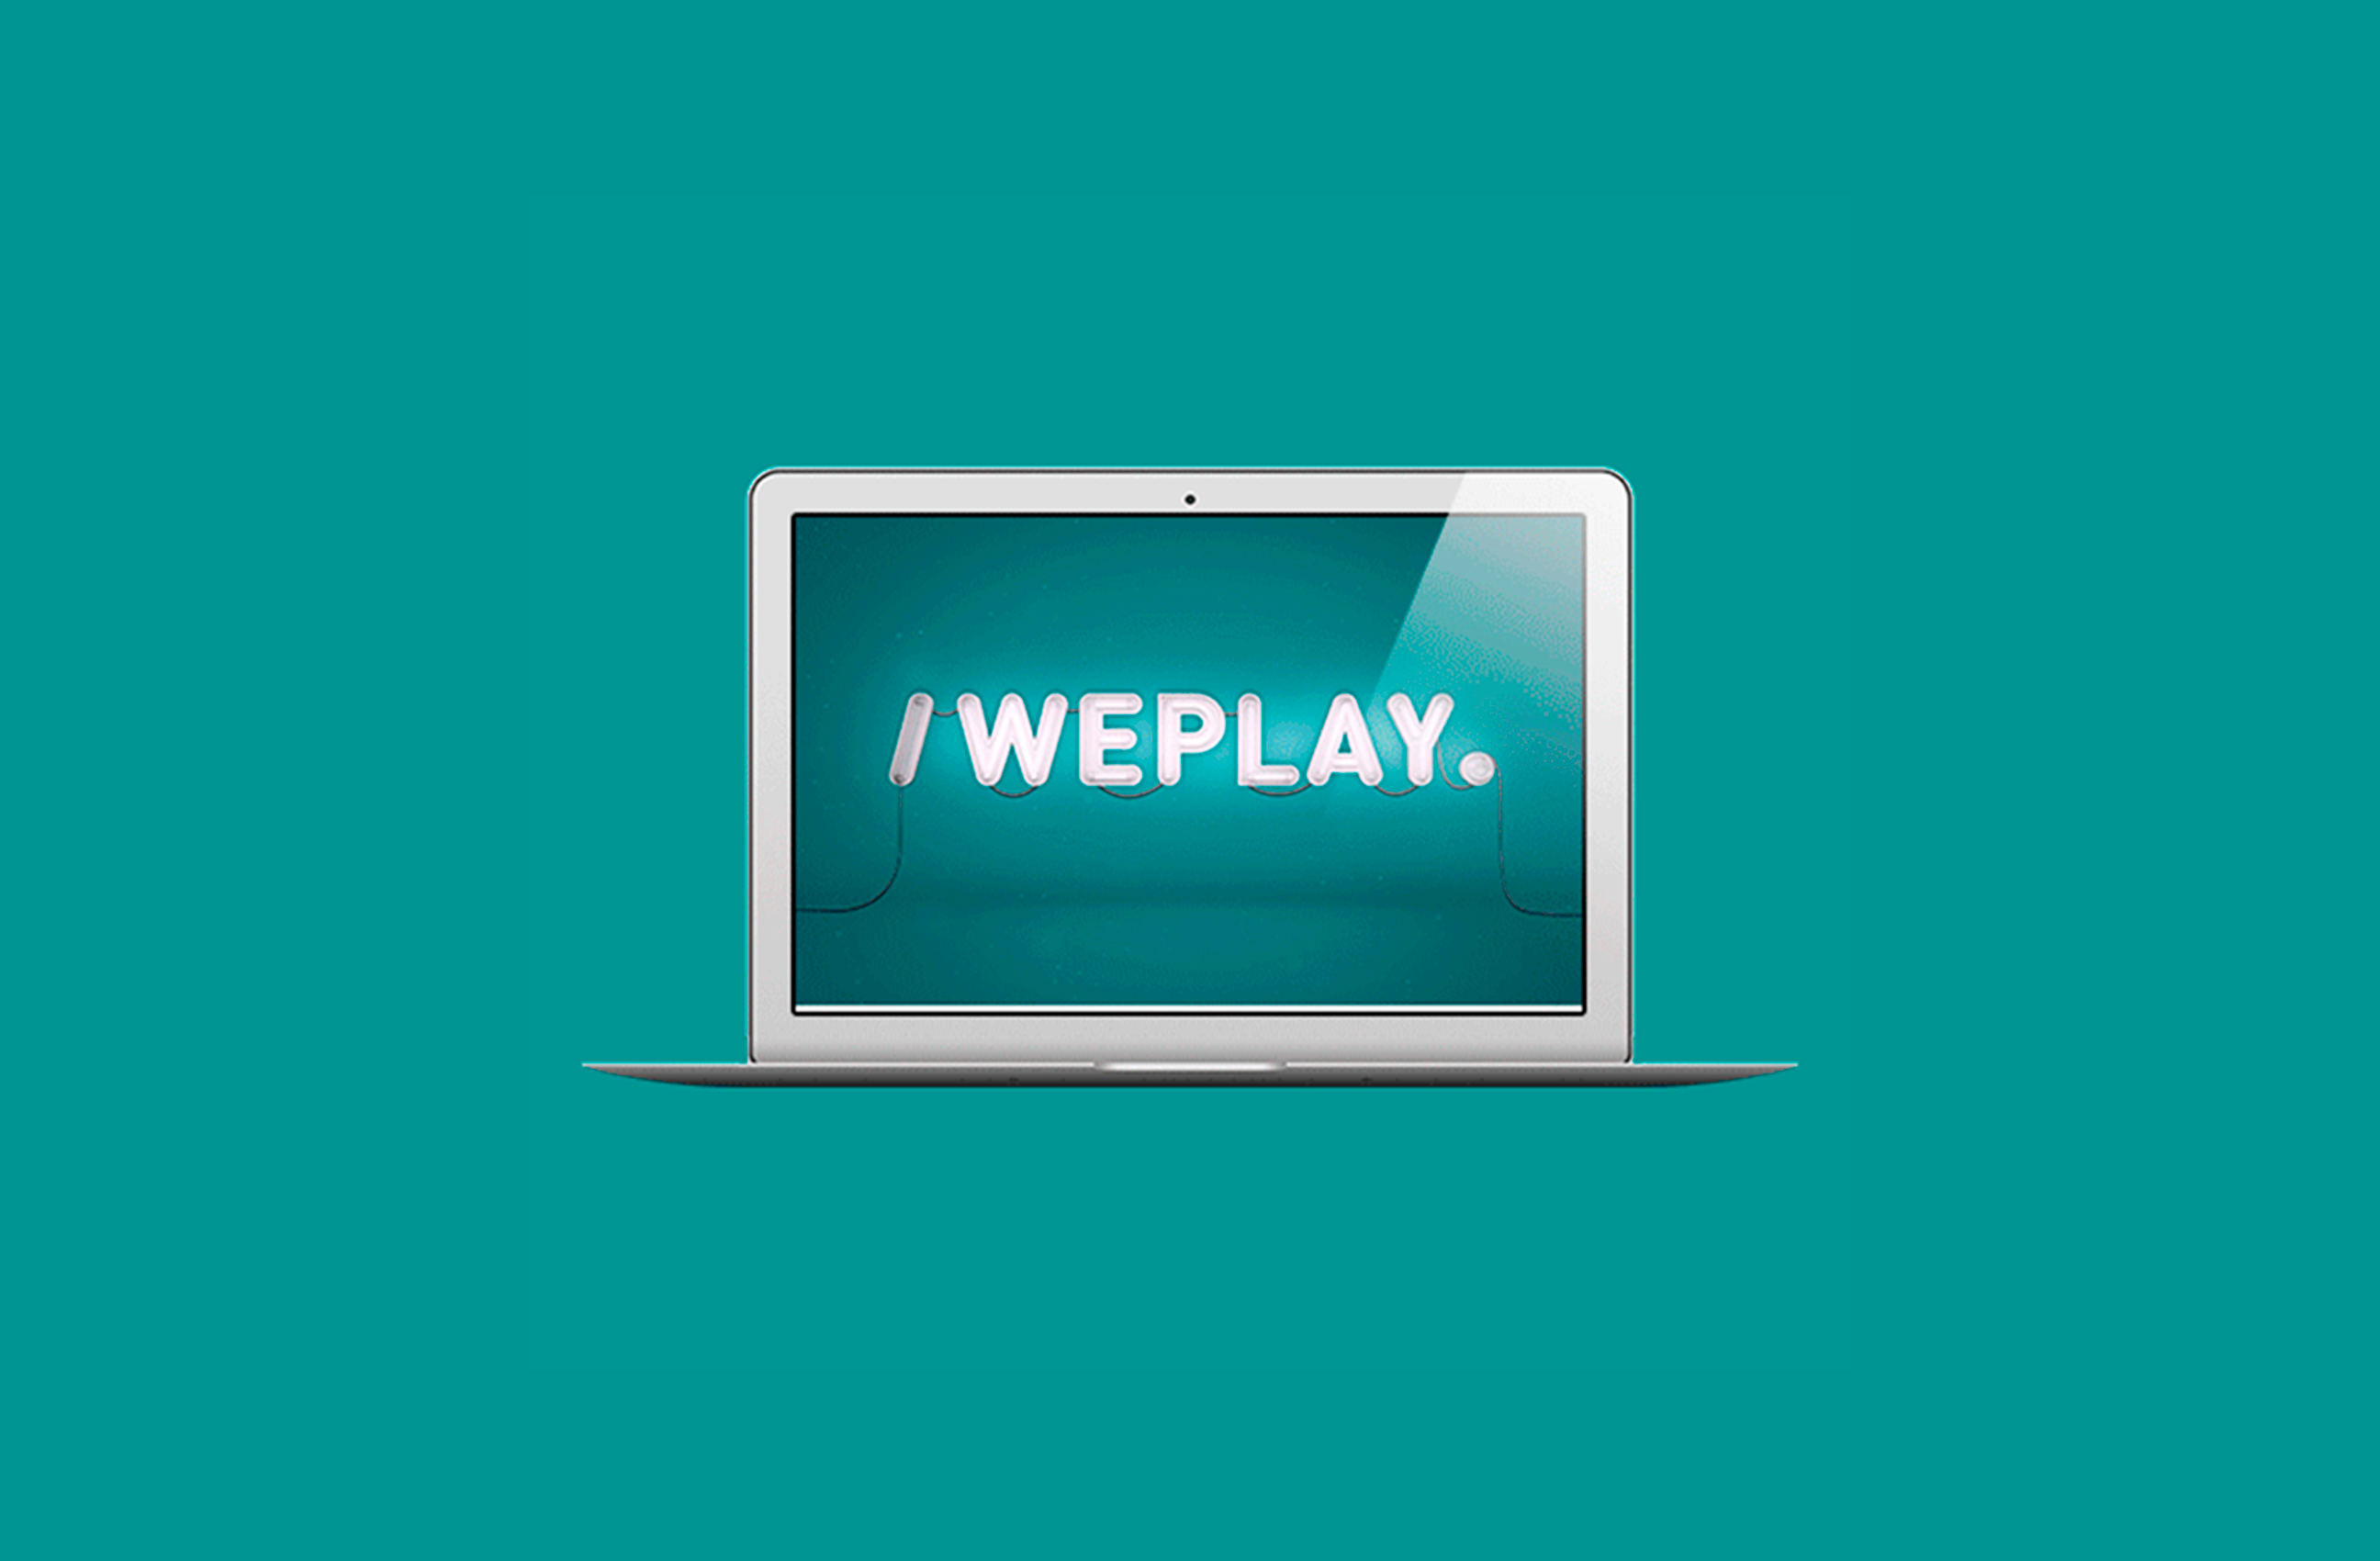 /WEPLAY. Dale play a tus redes